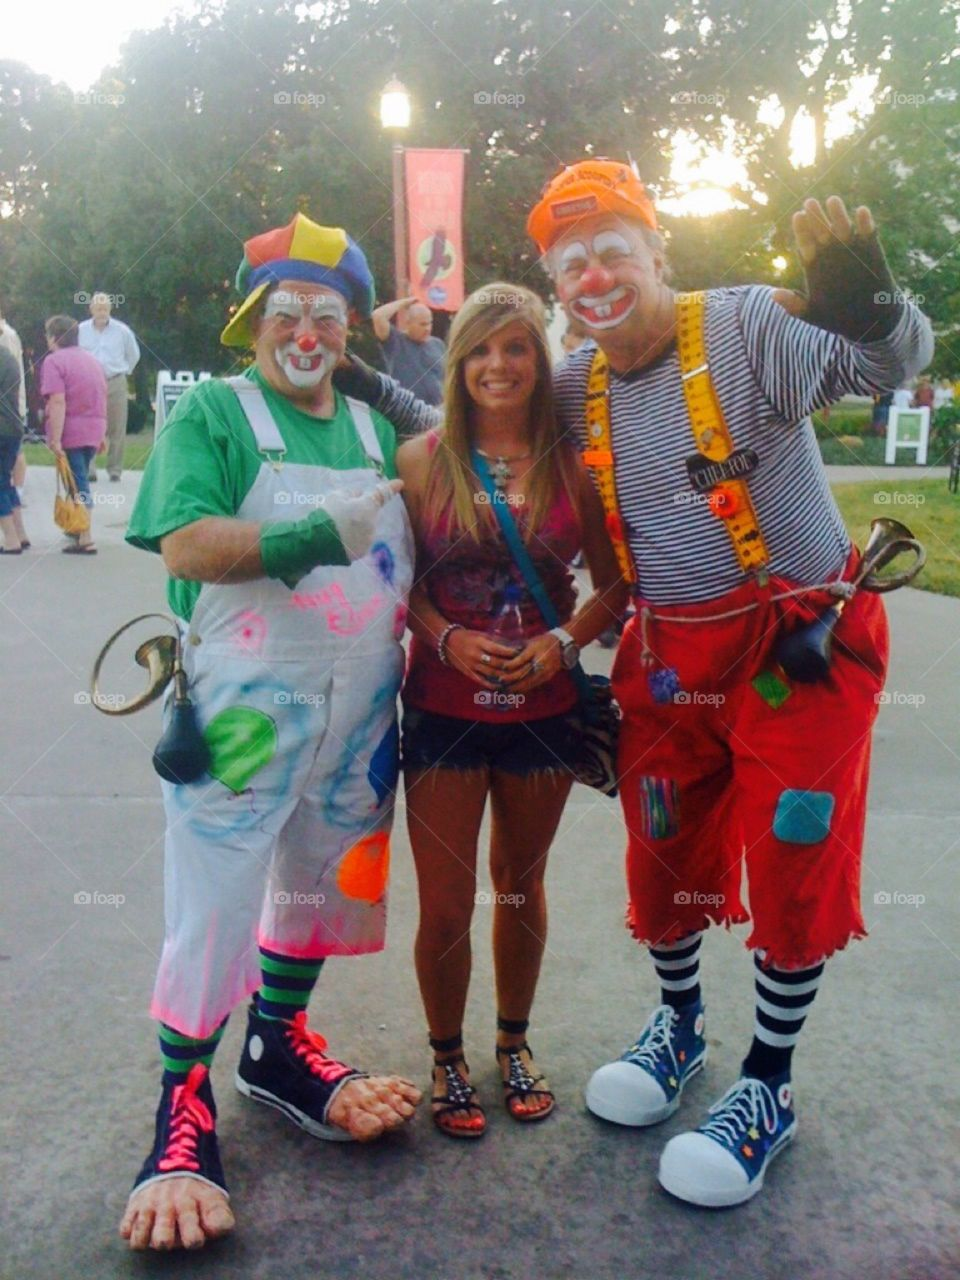 Portrait of men in face paint standing with young woman